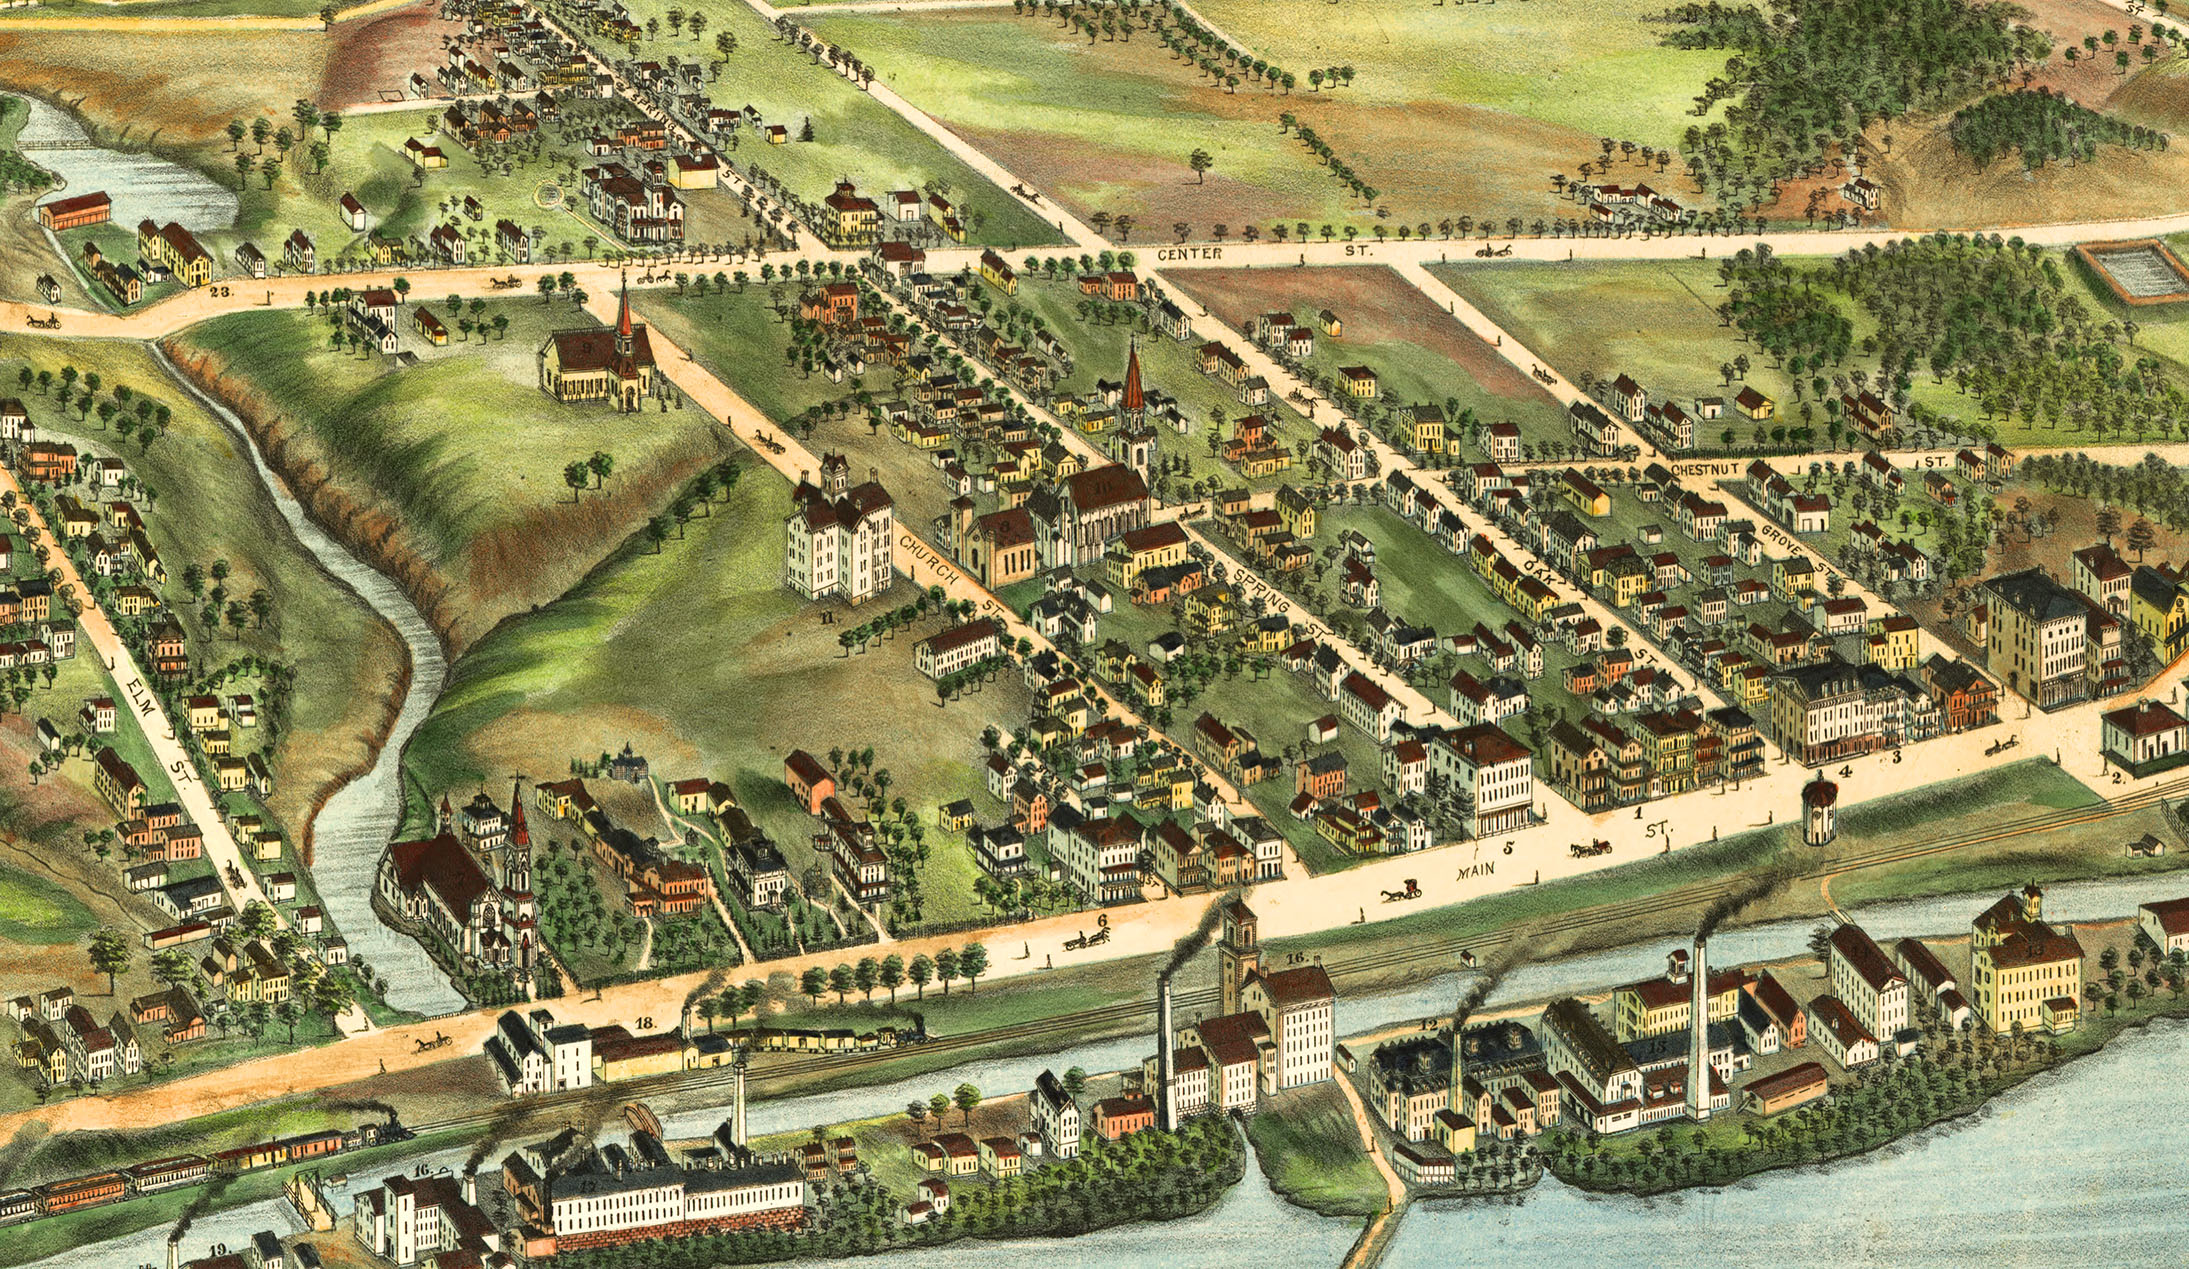 Windsor Locks (CT) United States  City pictures : Windsor Locks, CT in 1877 Bird's Eye View, Aerial map, Panorama ...